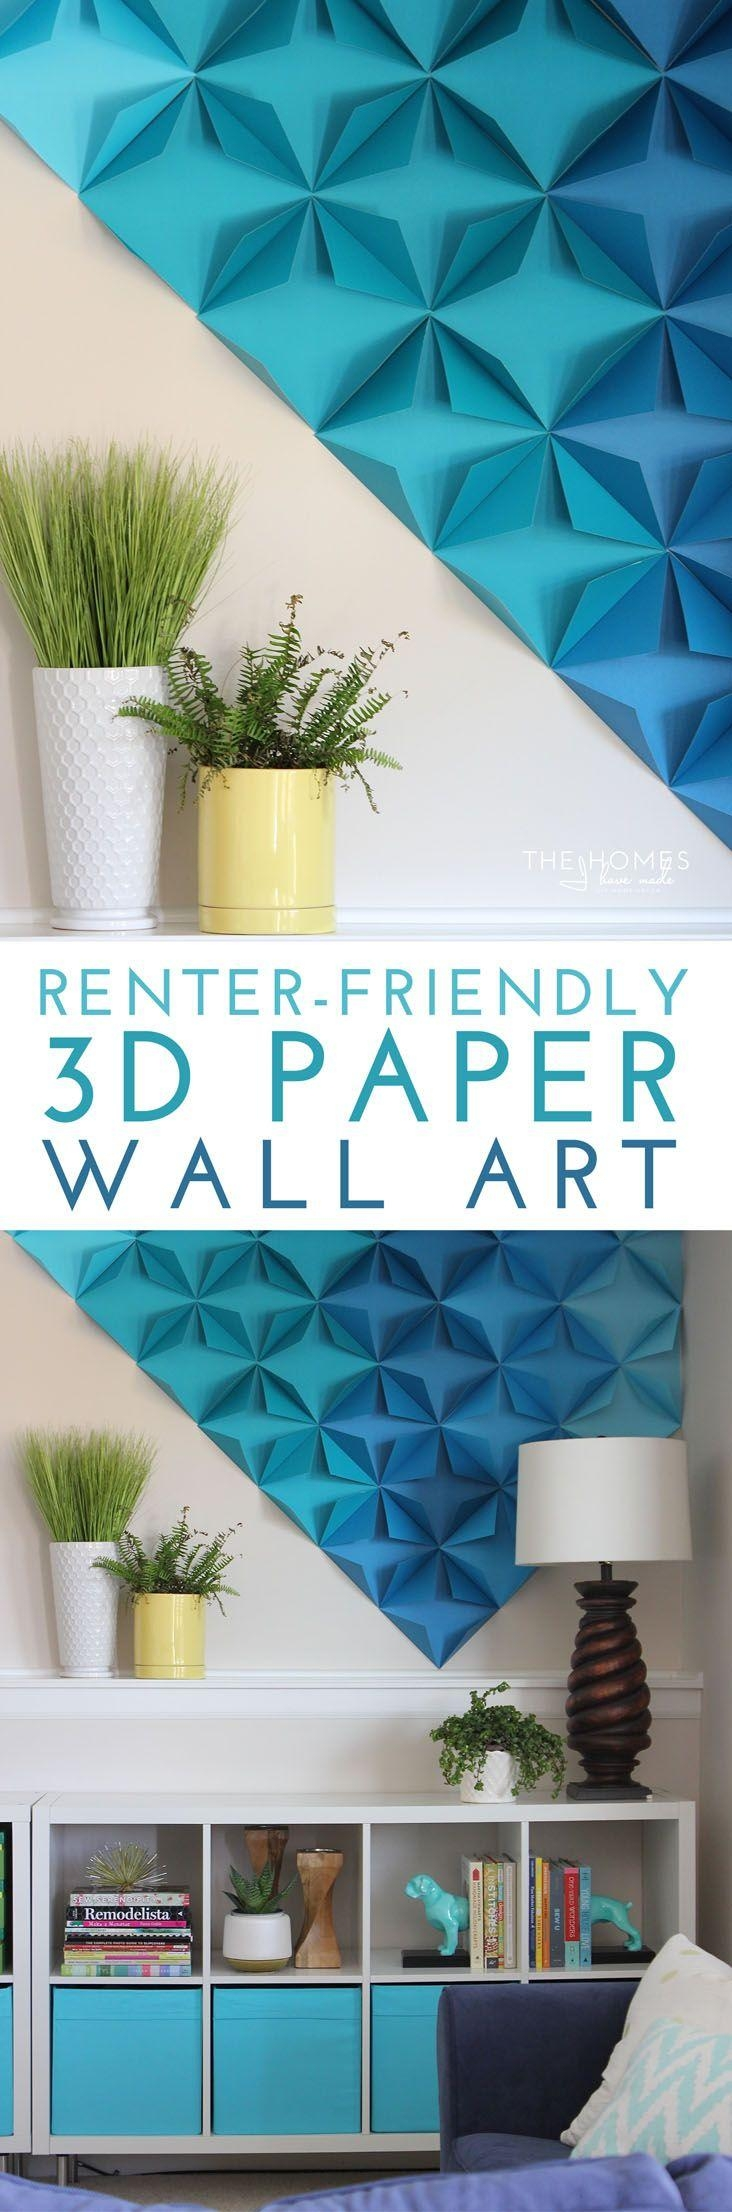 Best 25+ 3D Wall Art Ideas On Pinterest | Paper Wall Art, Paper Inside Blue And Cream Wall Art (View 12 of 20)